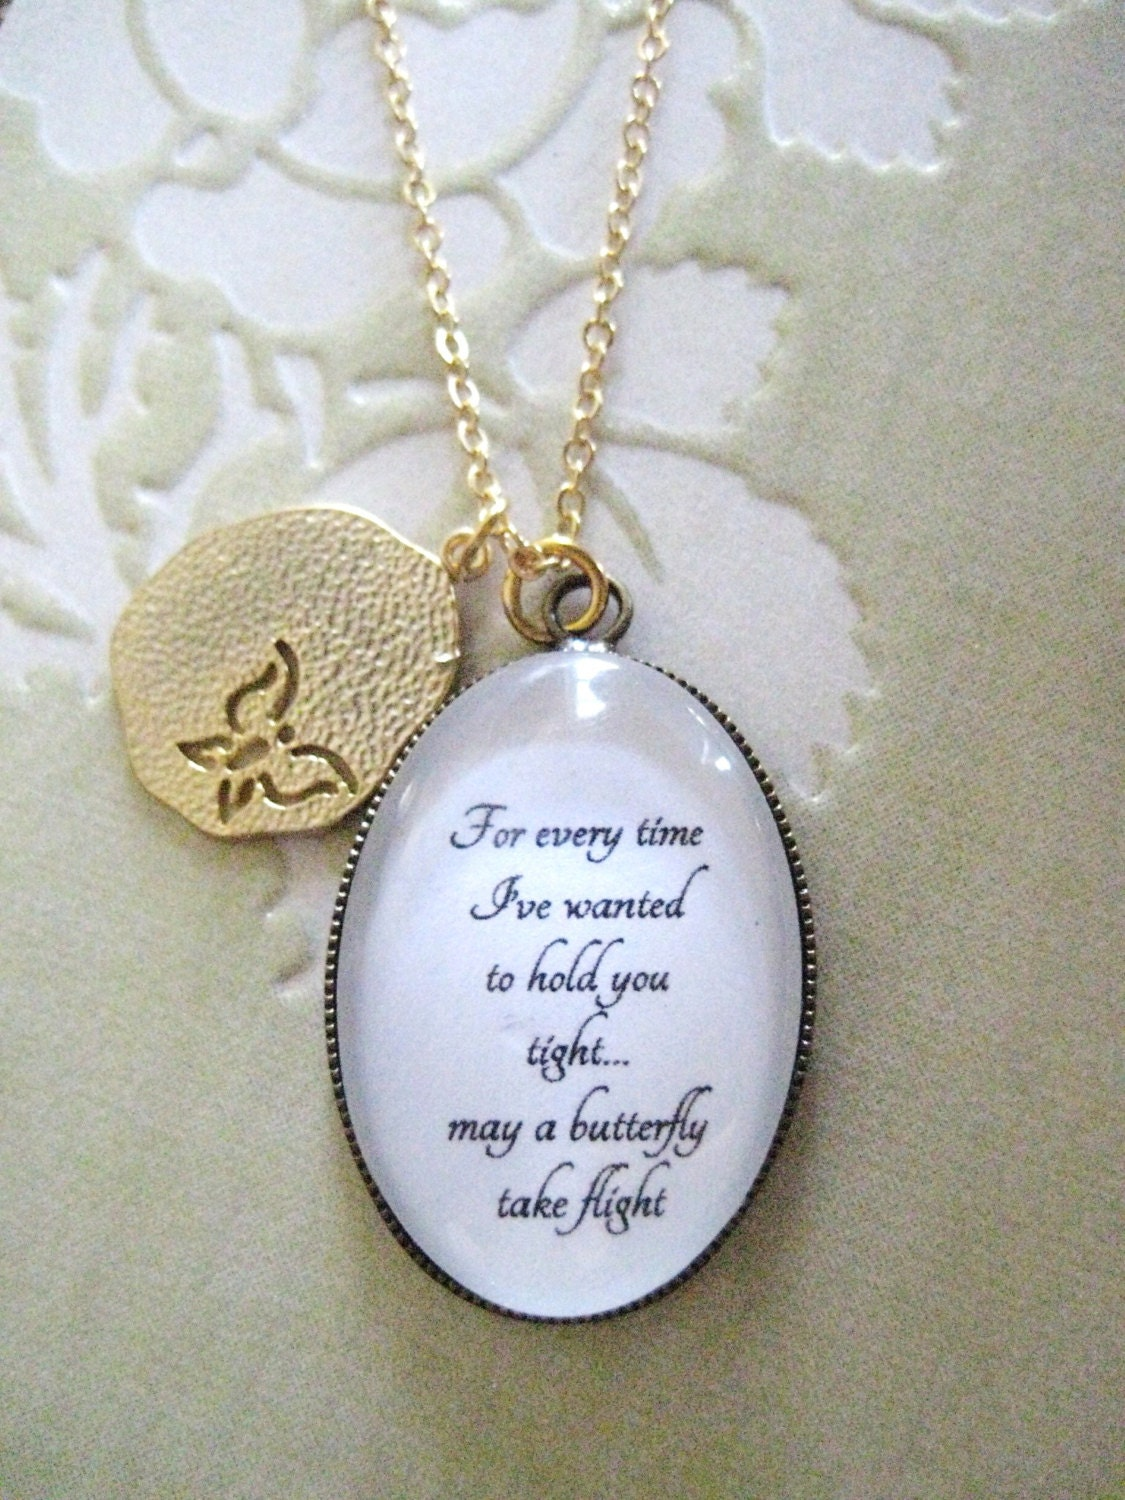 jewelry store memory keepsake personal never forgotten remembrance miscarriage but gone necklace baby